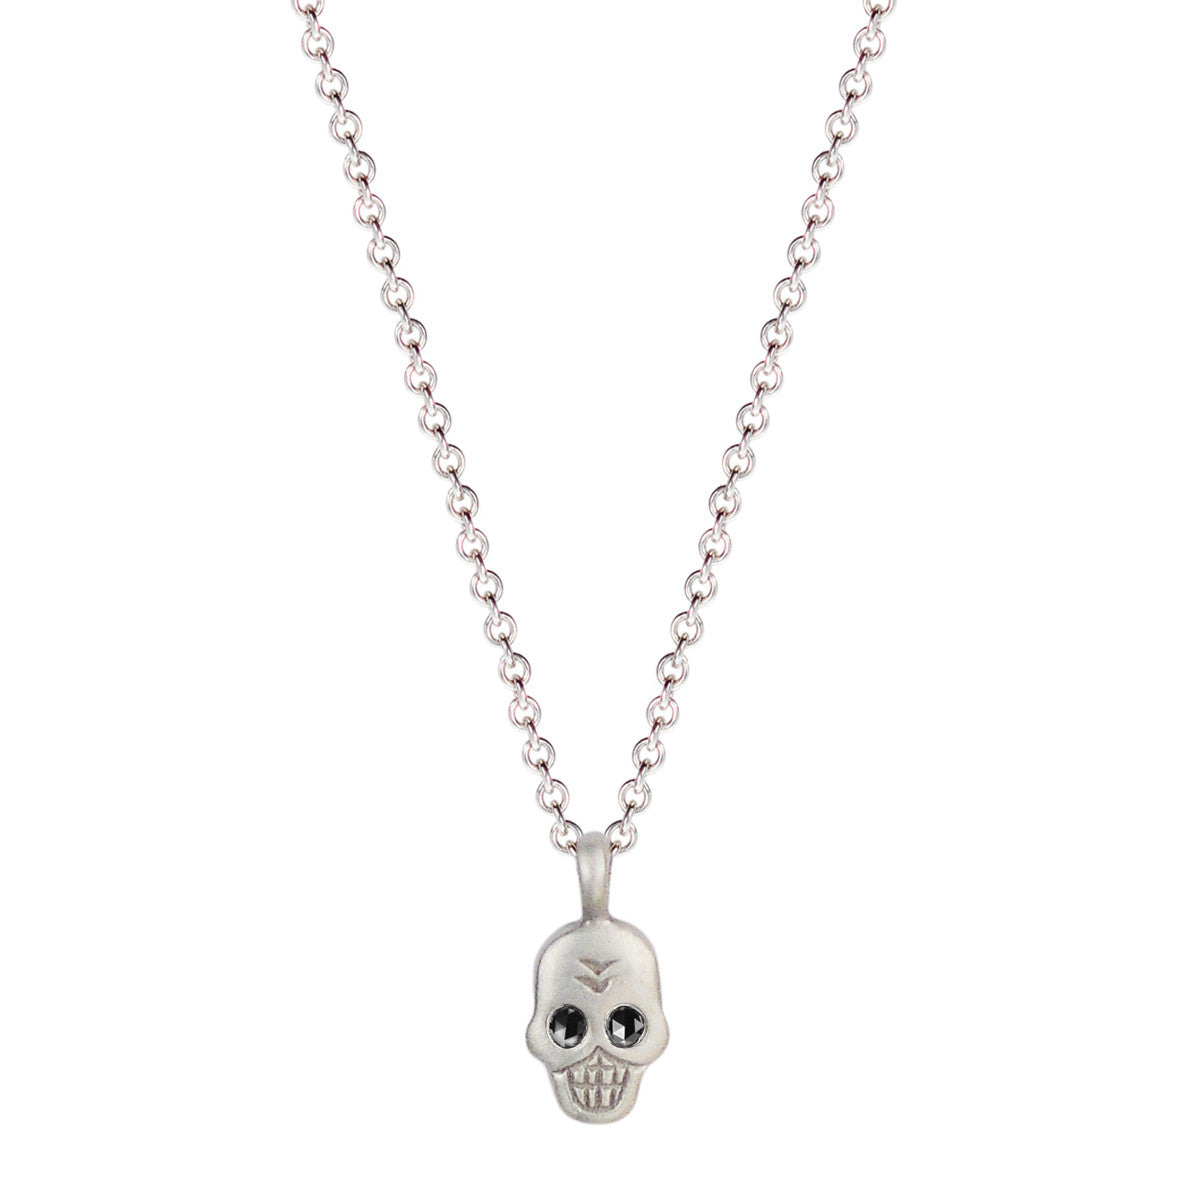 Sterling Silver Mini Skull Pendant with Black Diamond Eyes